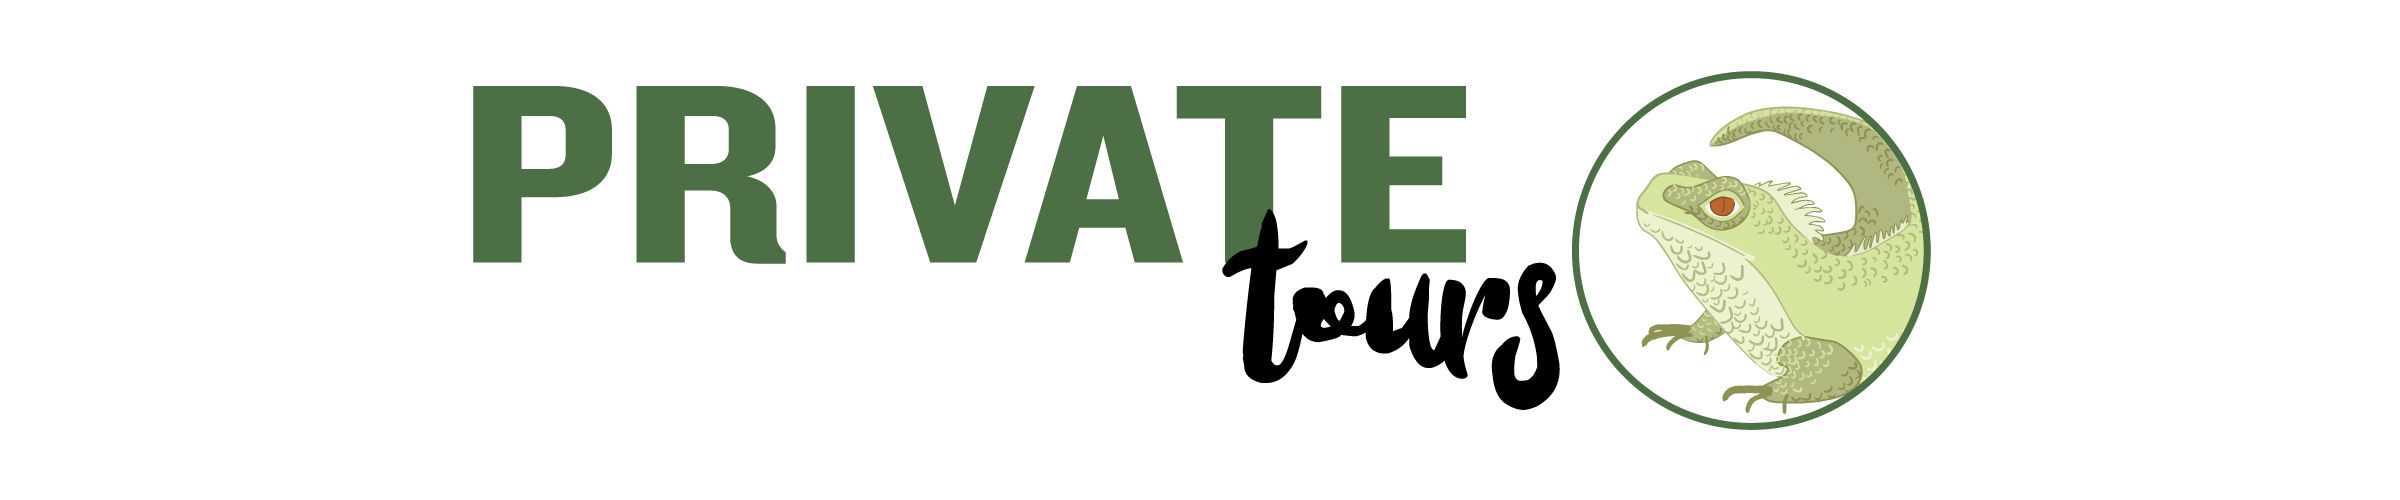 Private Tours Logo